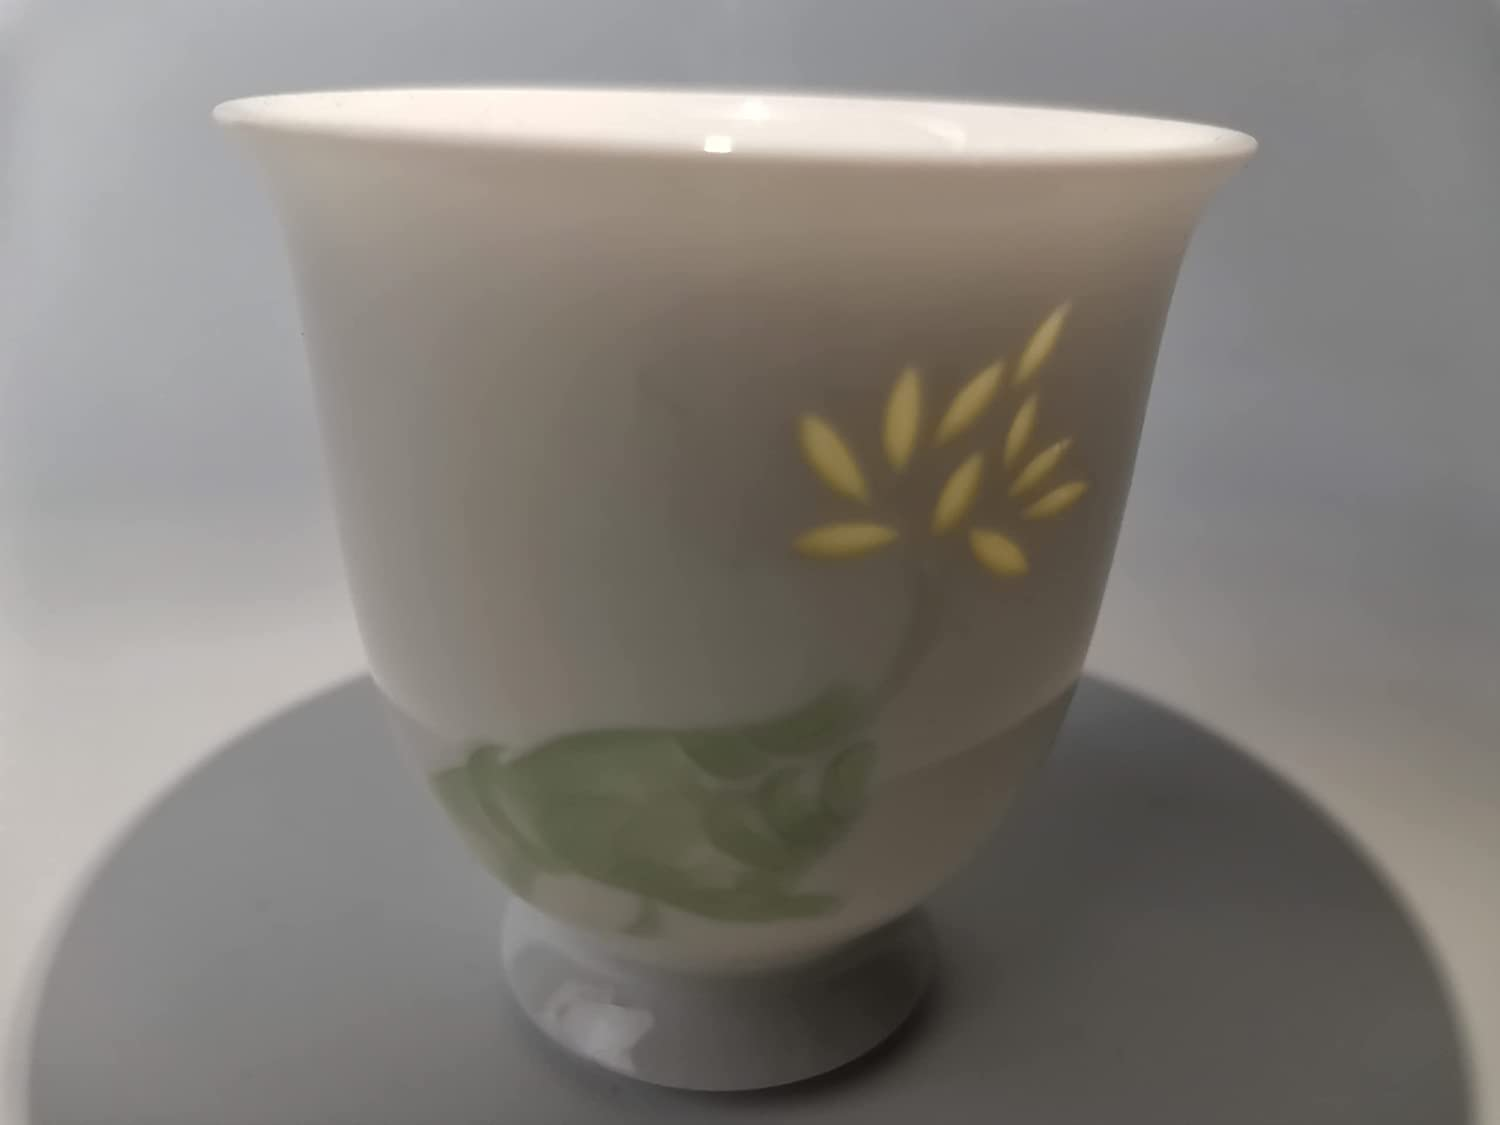 Yi Fan Pottery Pervious Ranking Large special price !! TOP17 cups light exquisite to